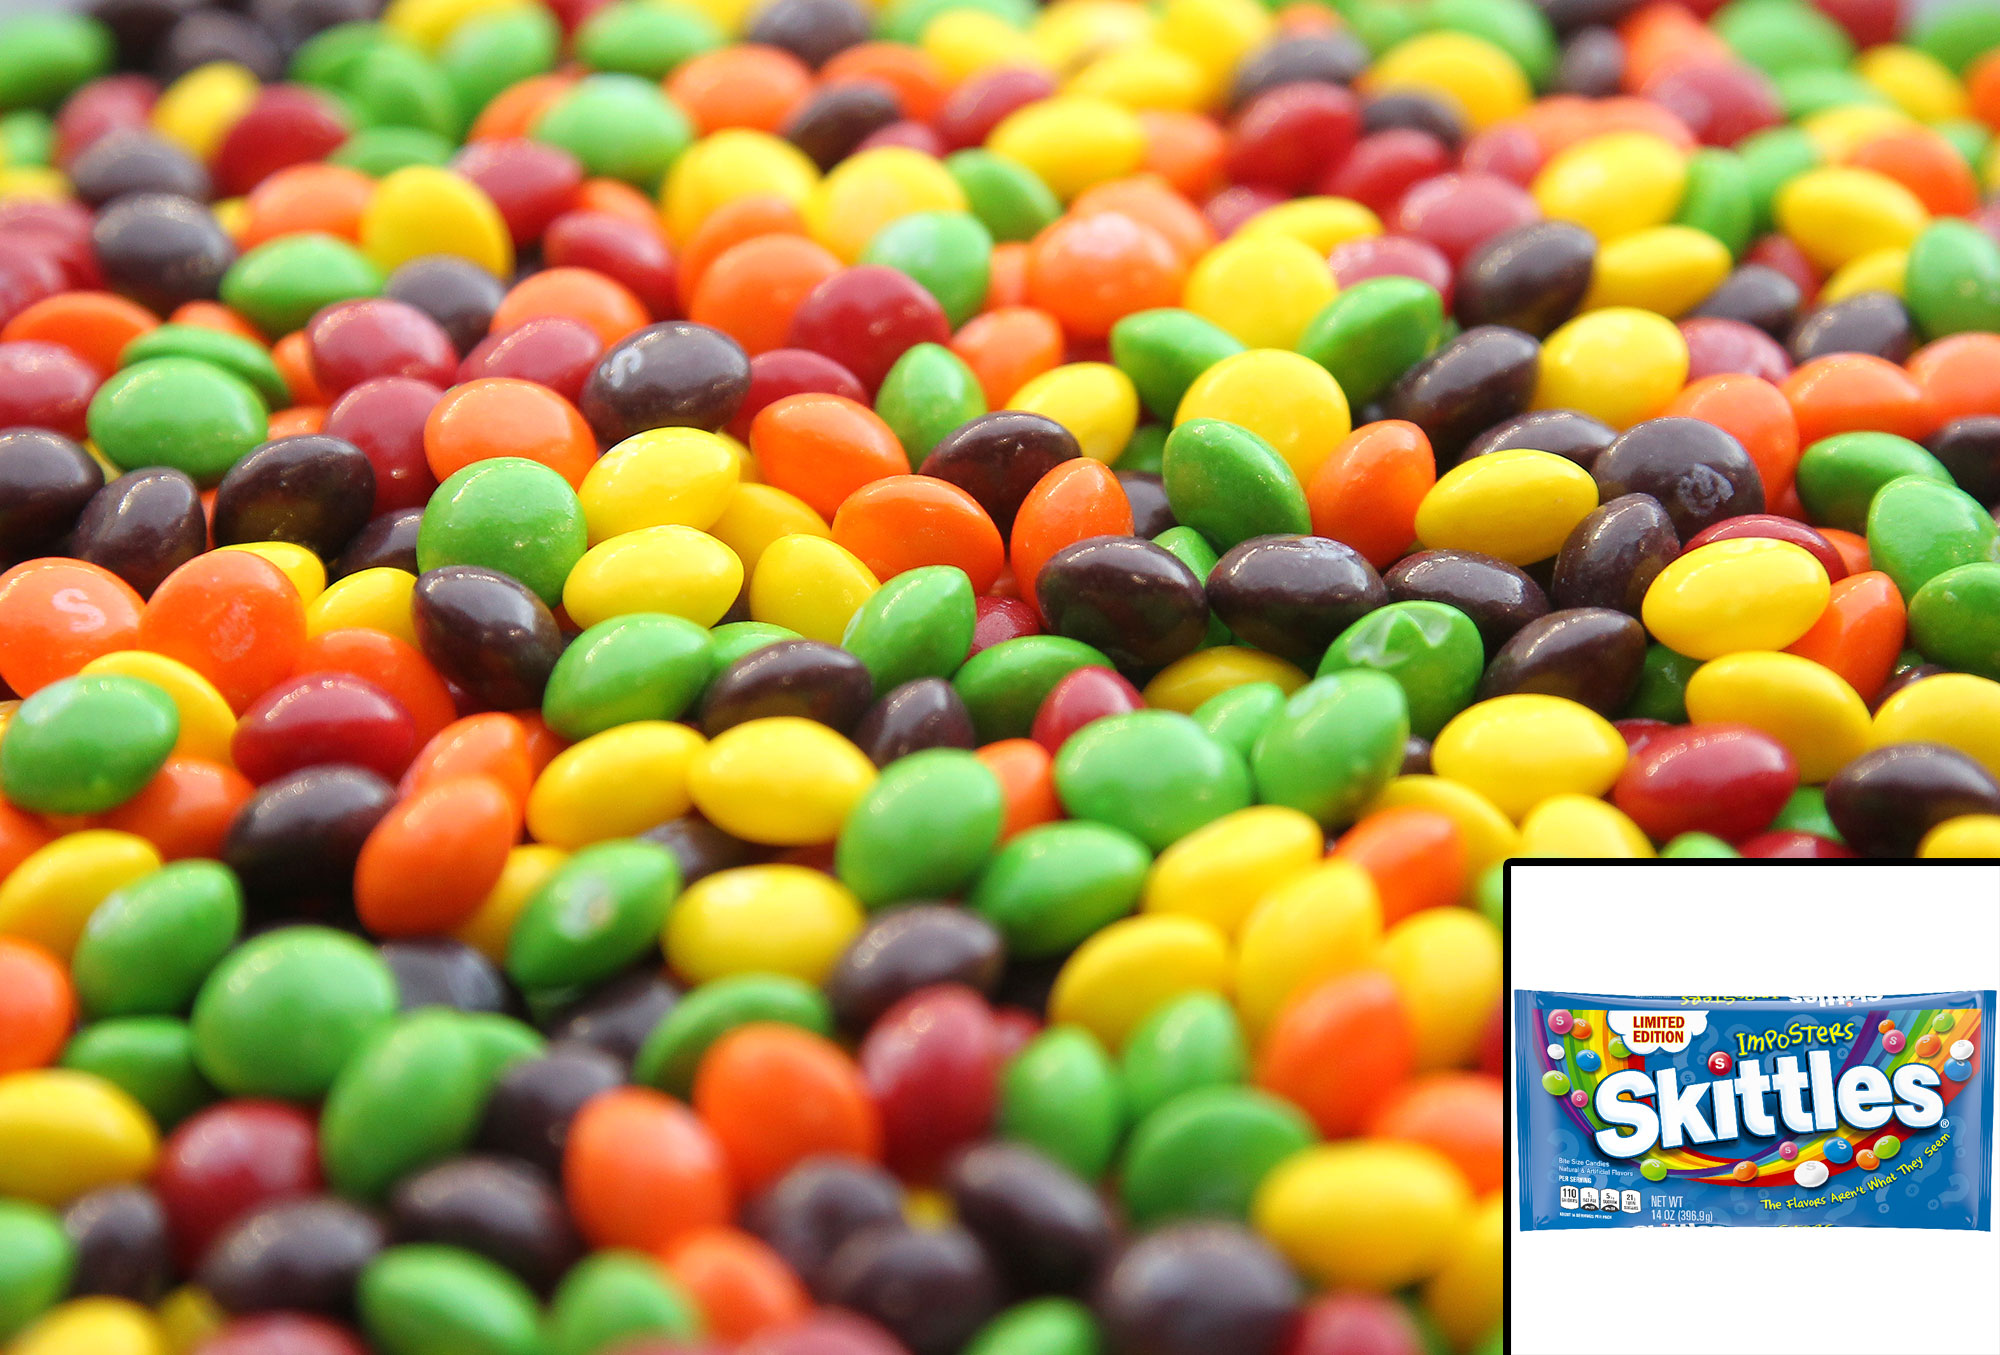 Skittles Releases Limited-Edition Flavors for Summer 2019